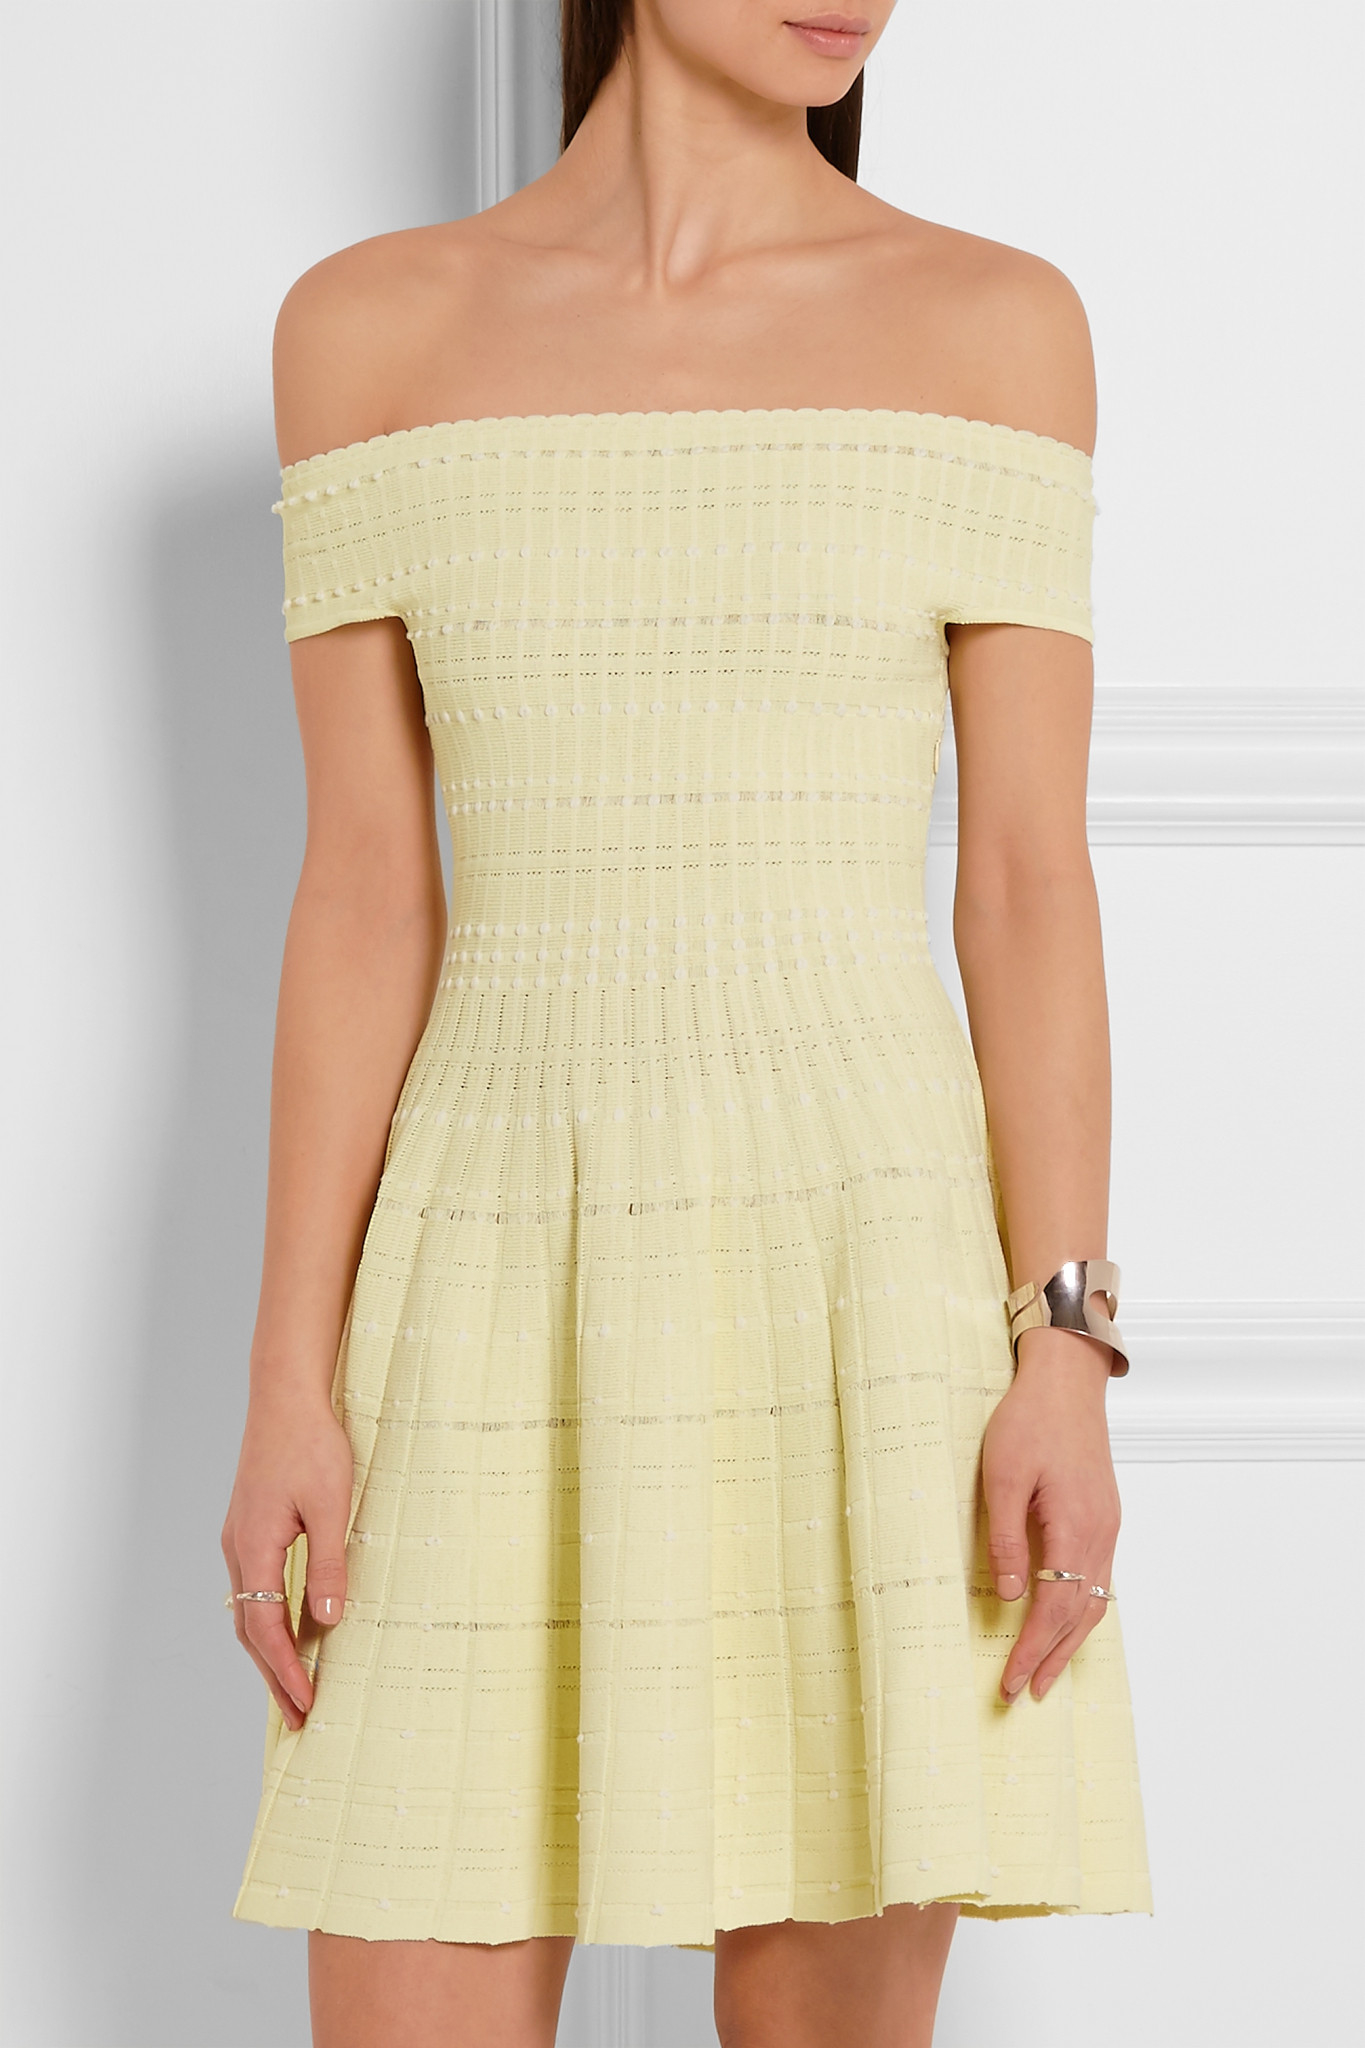 dd40628a57fb Lyst - Alexander McQueen Off-the-shoulder Knitted Mini Dress in Blue